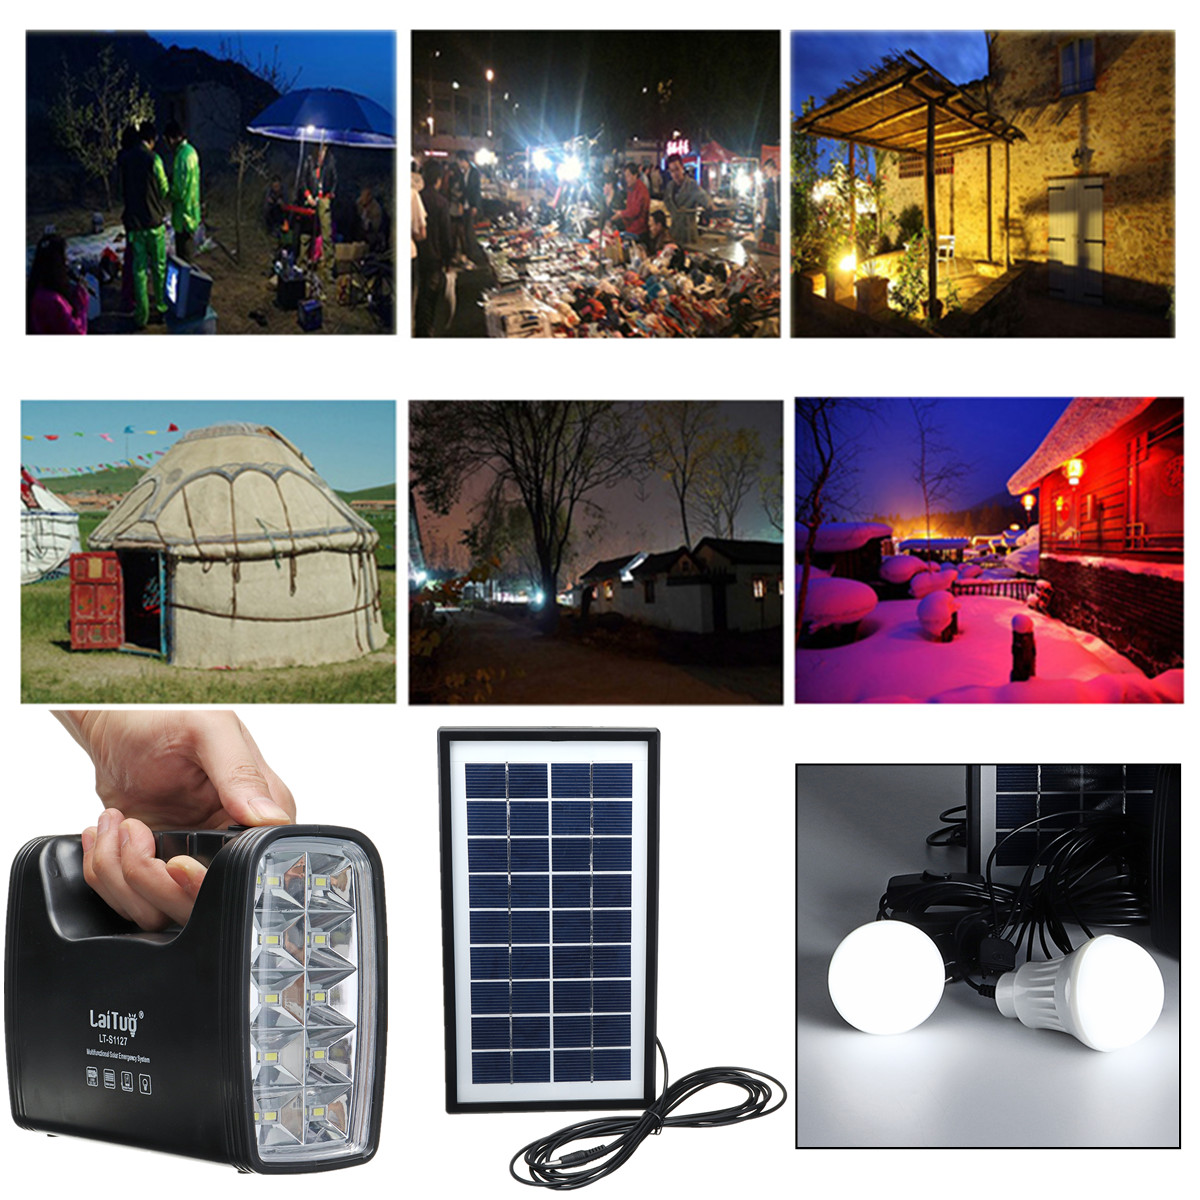 Solar Lighting System Protable DC Home System Light Kit Solar Generator With Solar Panel